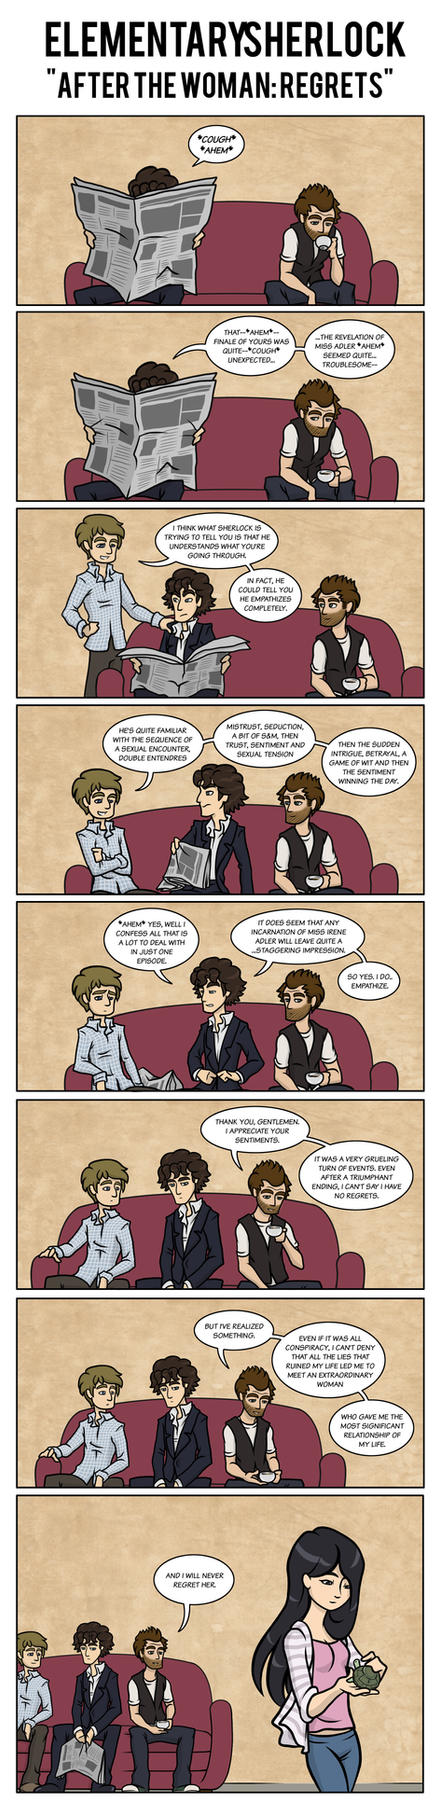 Elementary/Sherlock: After the Woman-Regrets by maryfgr23